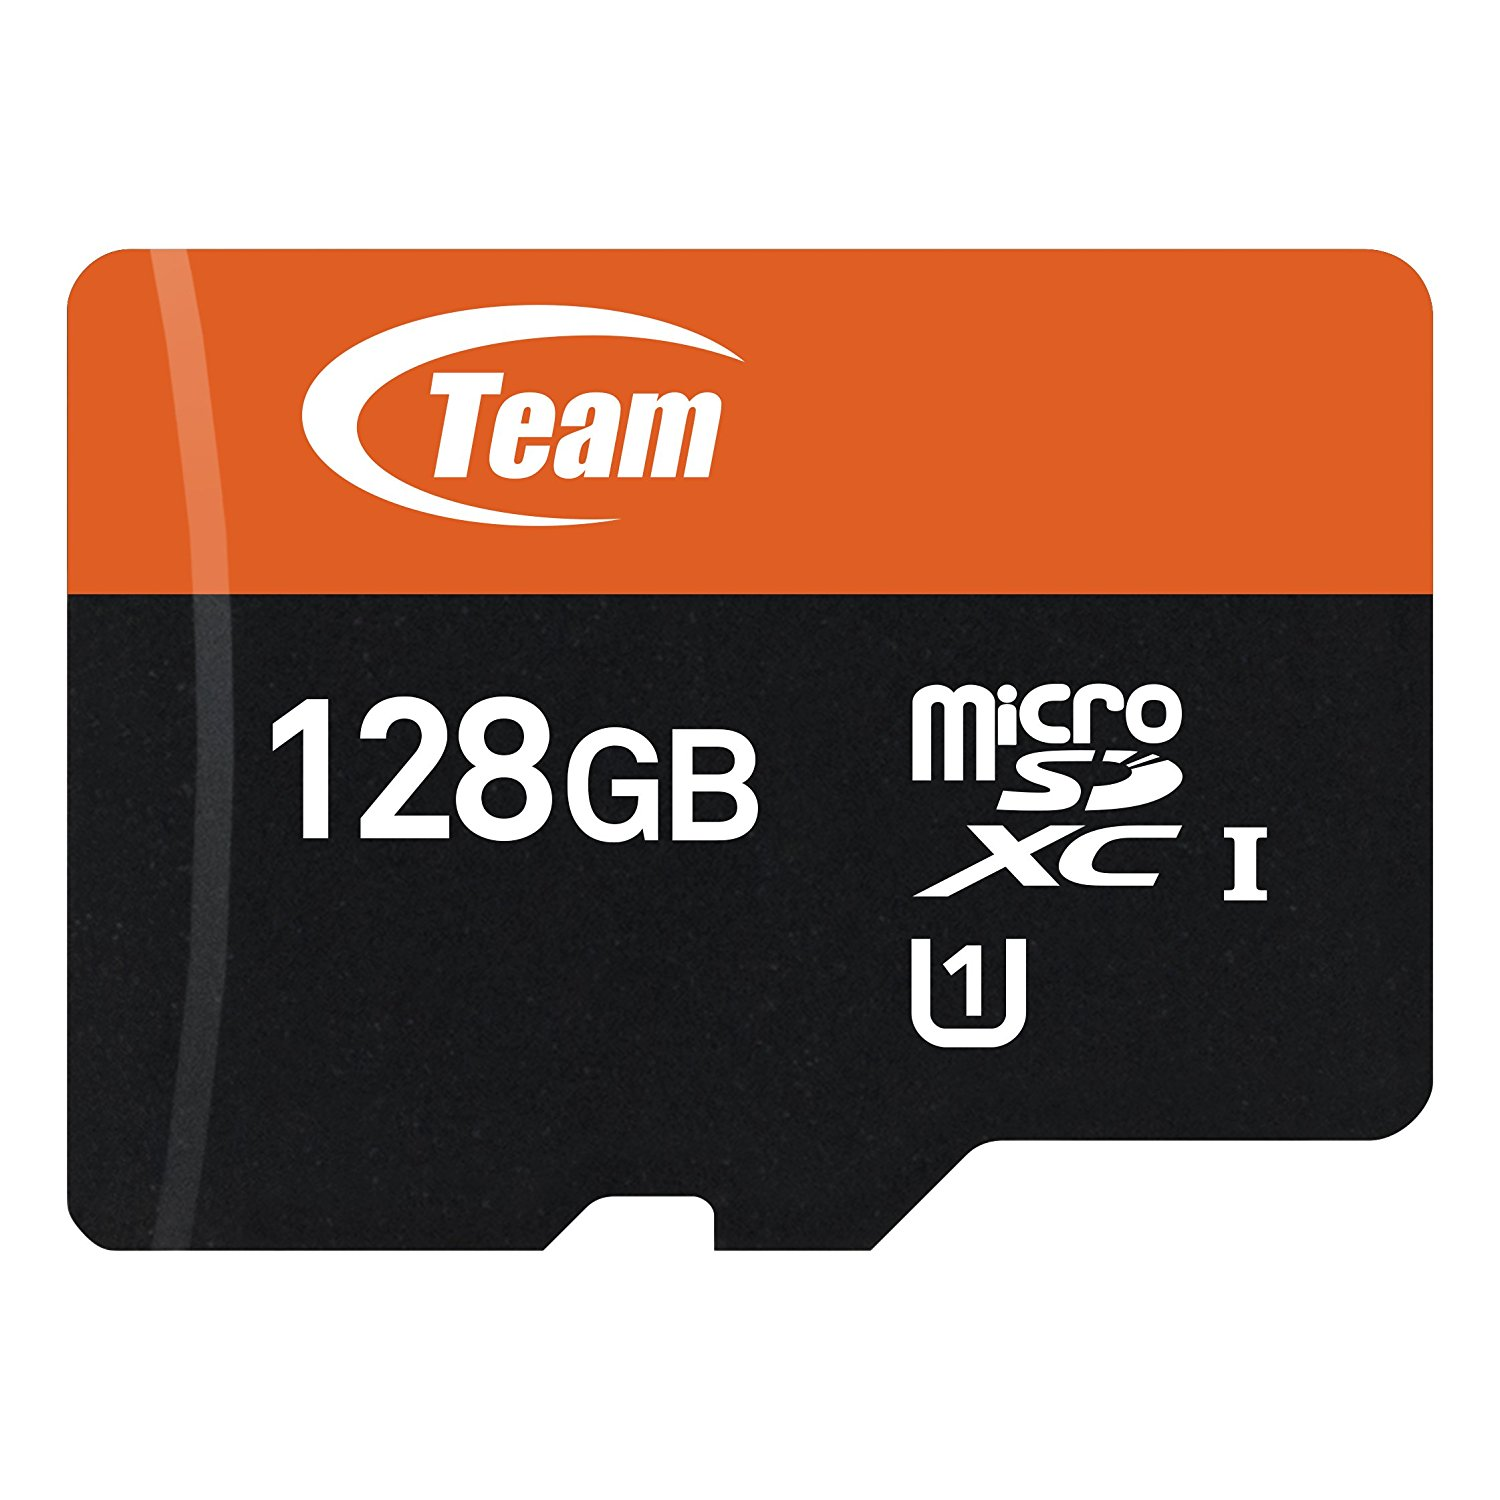 This Card Comes with. 2GB Team CF Memory Card High Performance 133x For Nikon CoolPix 3500 4300 4500